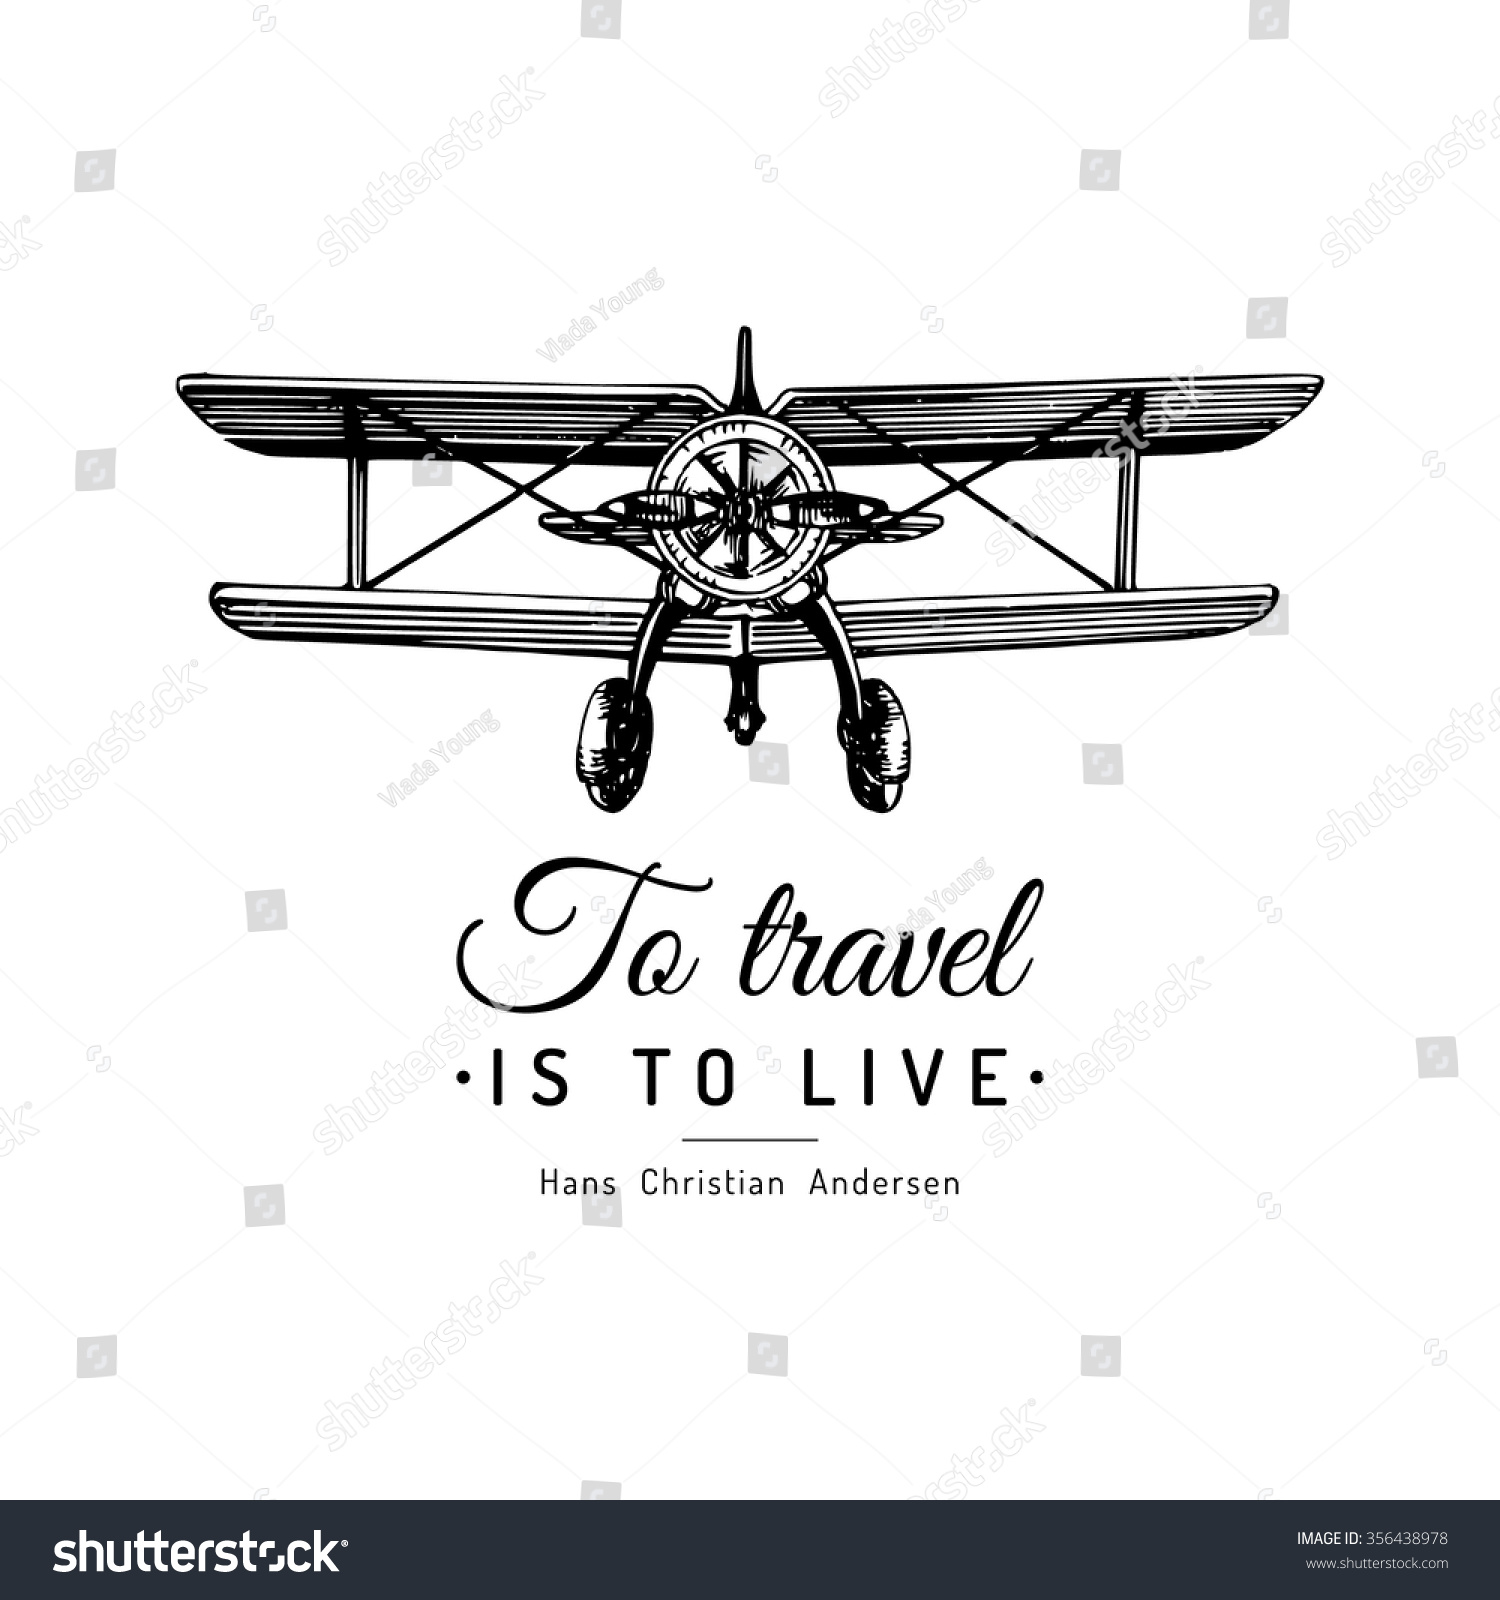 vintage travel clipart black and white - photo #14